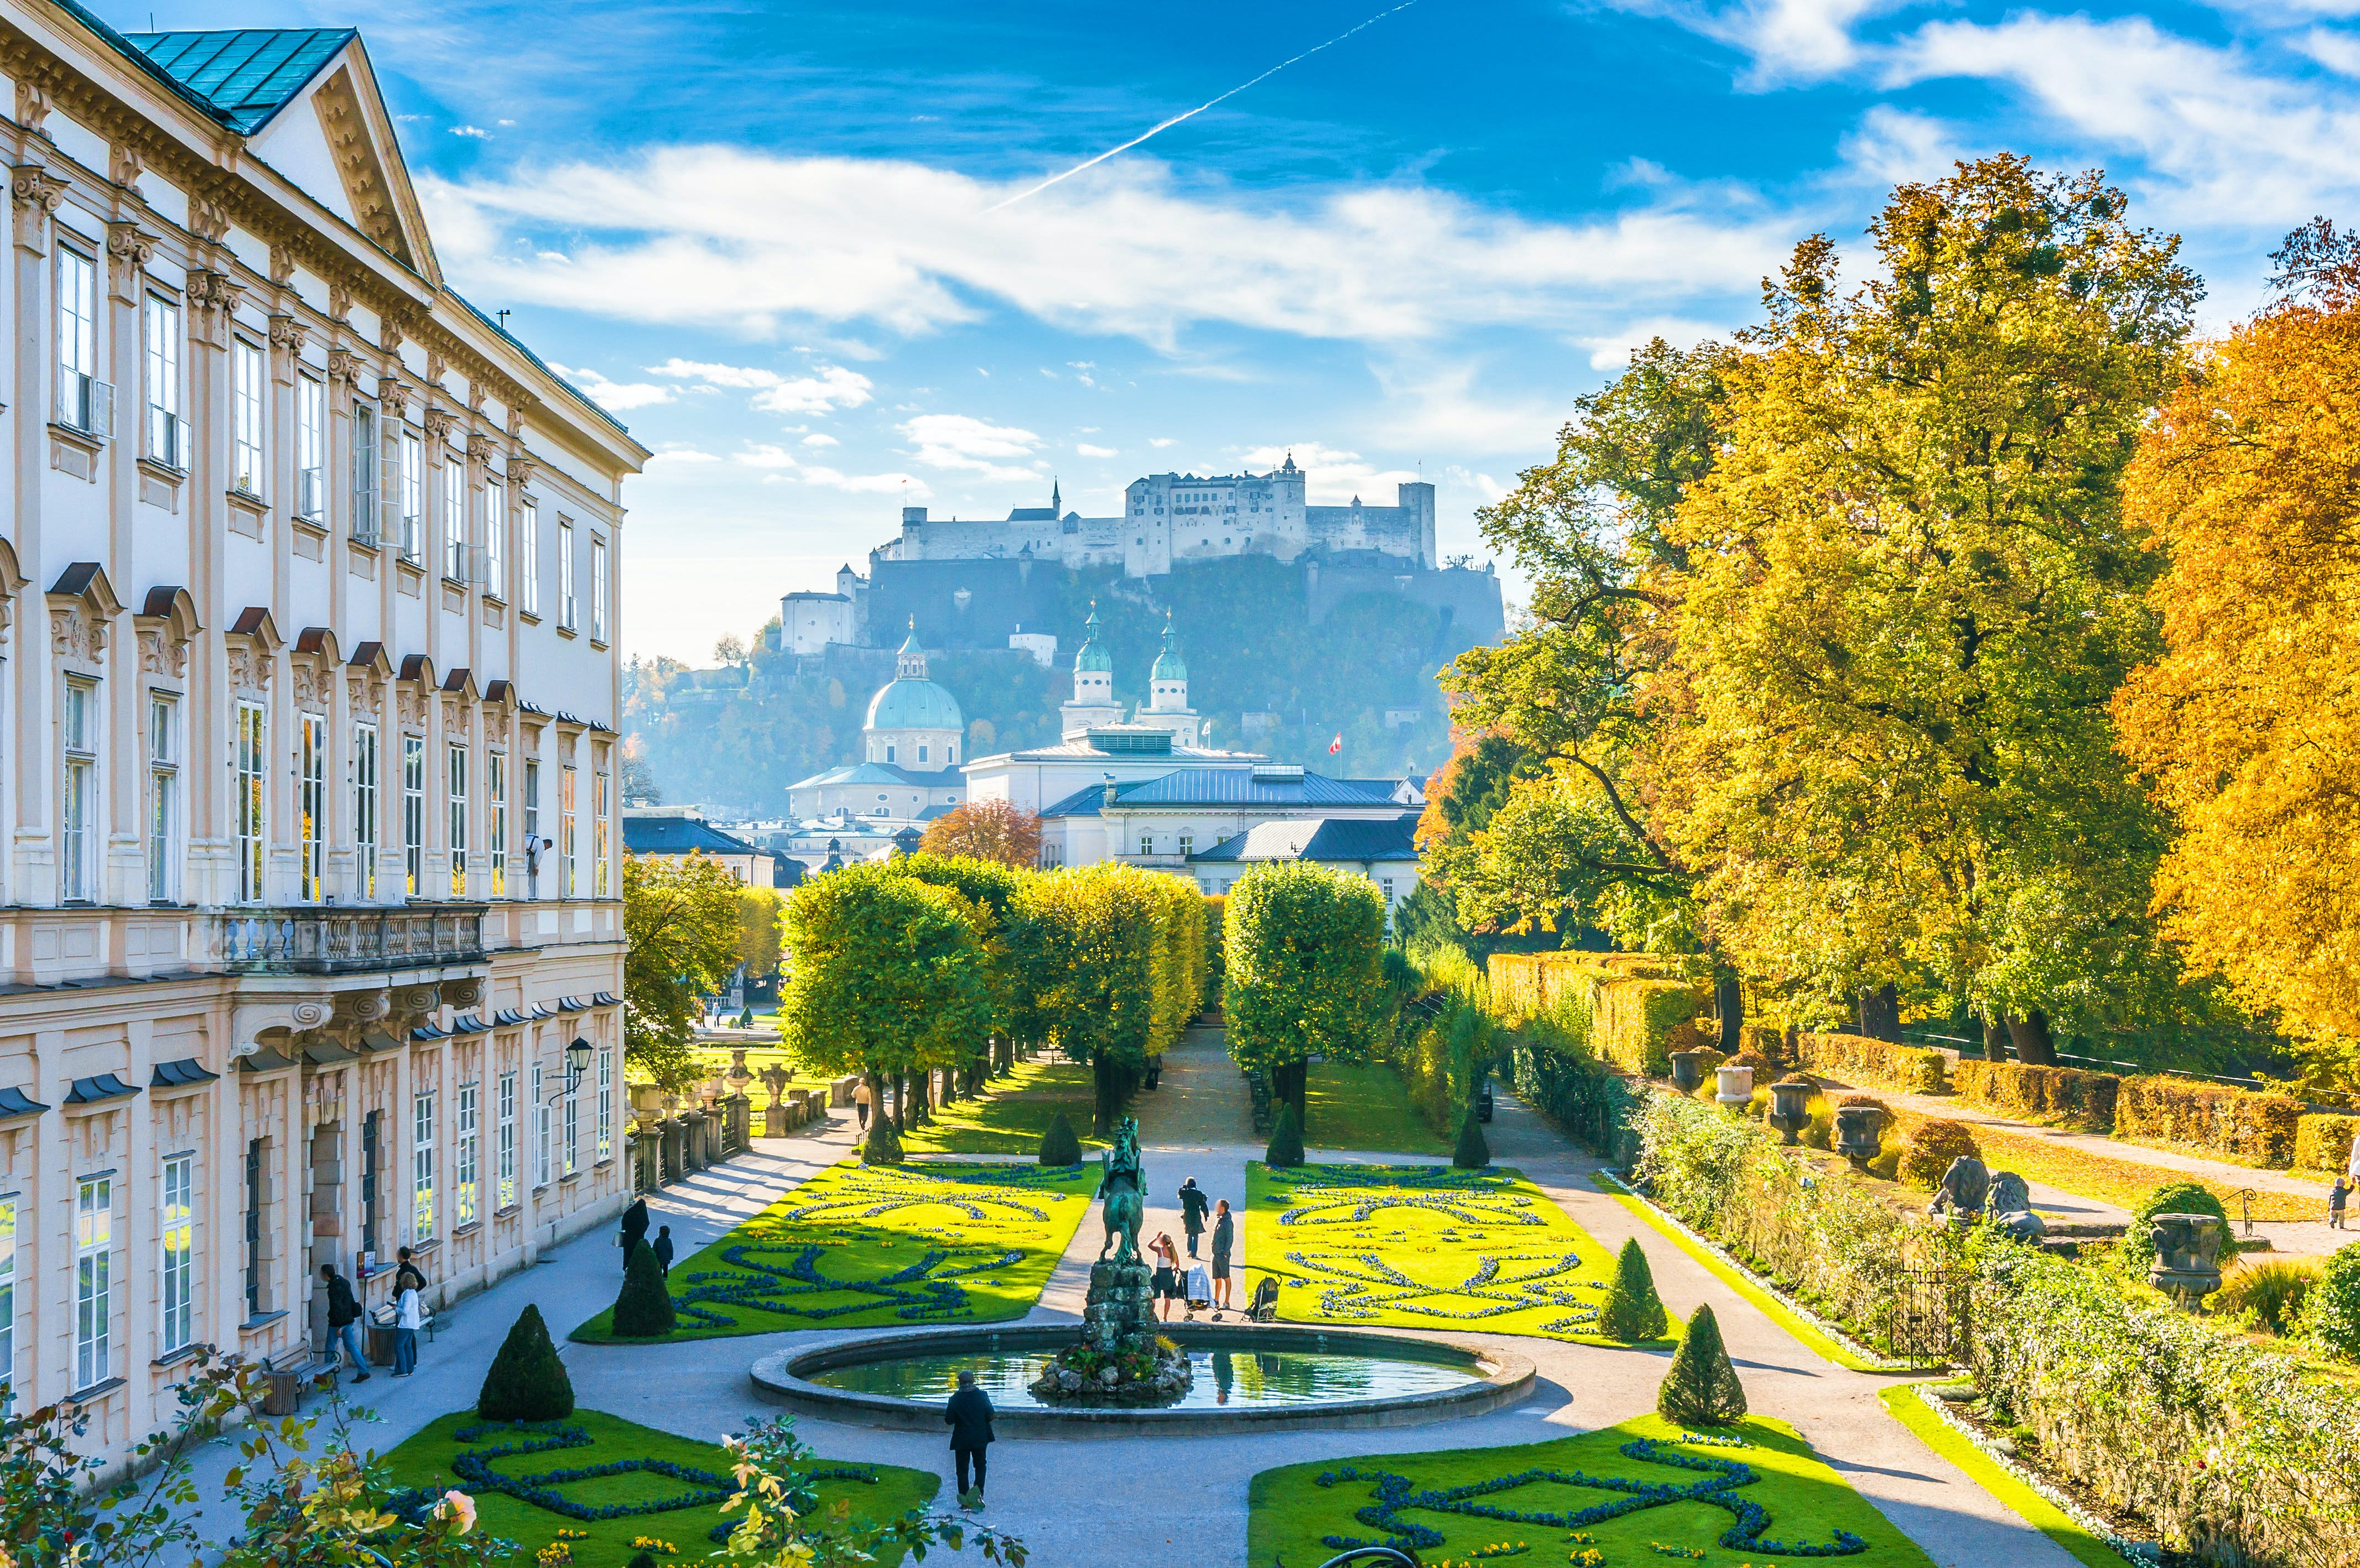 A view from Salzburg's Mirabell Gardens with the city's hilltop fortress in the background. The buildings are grand and white while the gardens are green and neatly manicured.